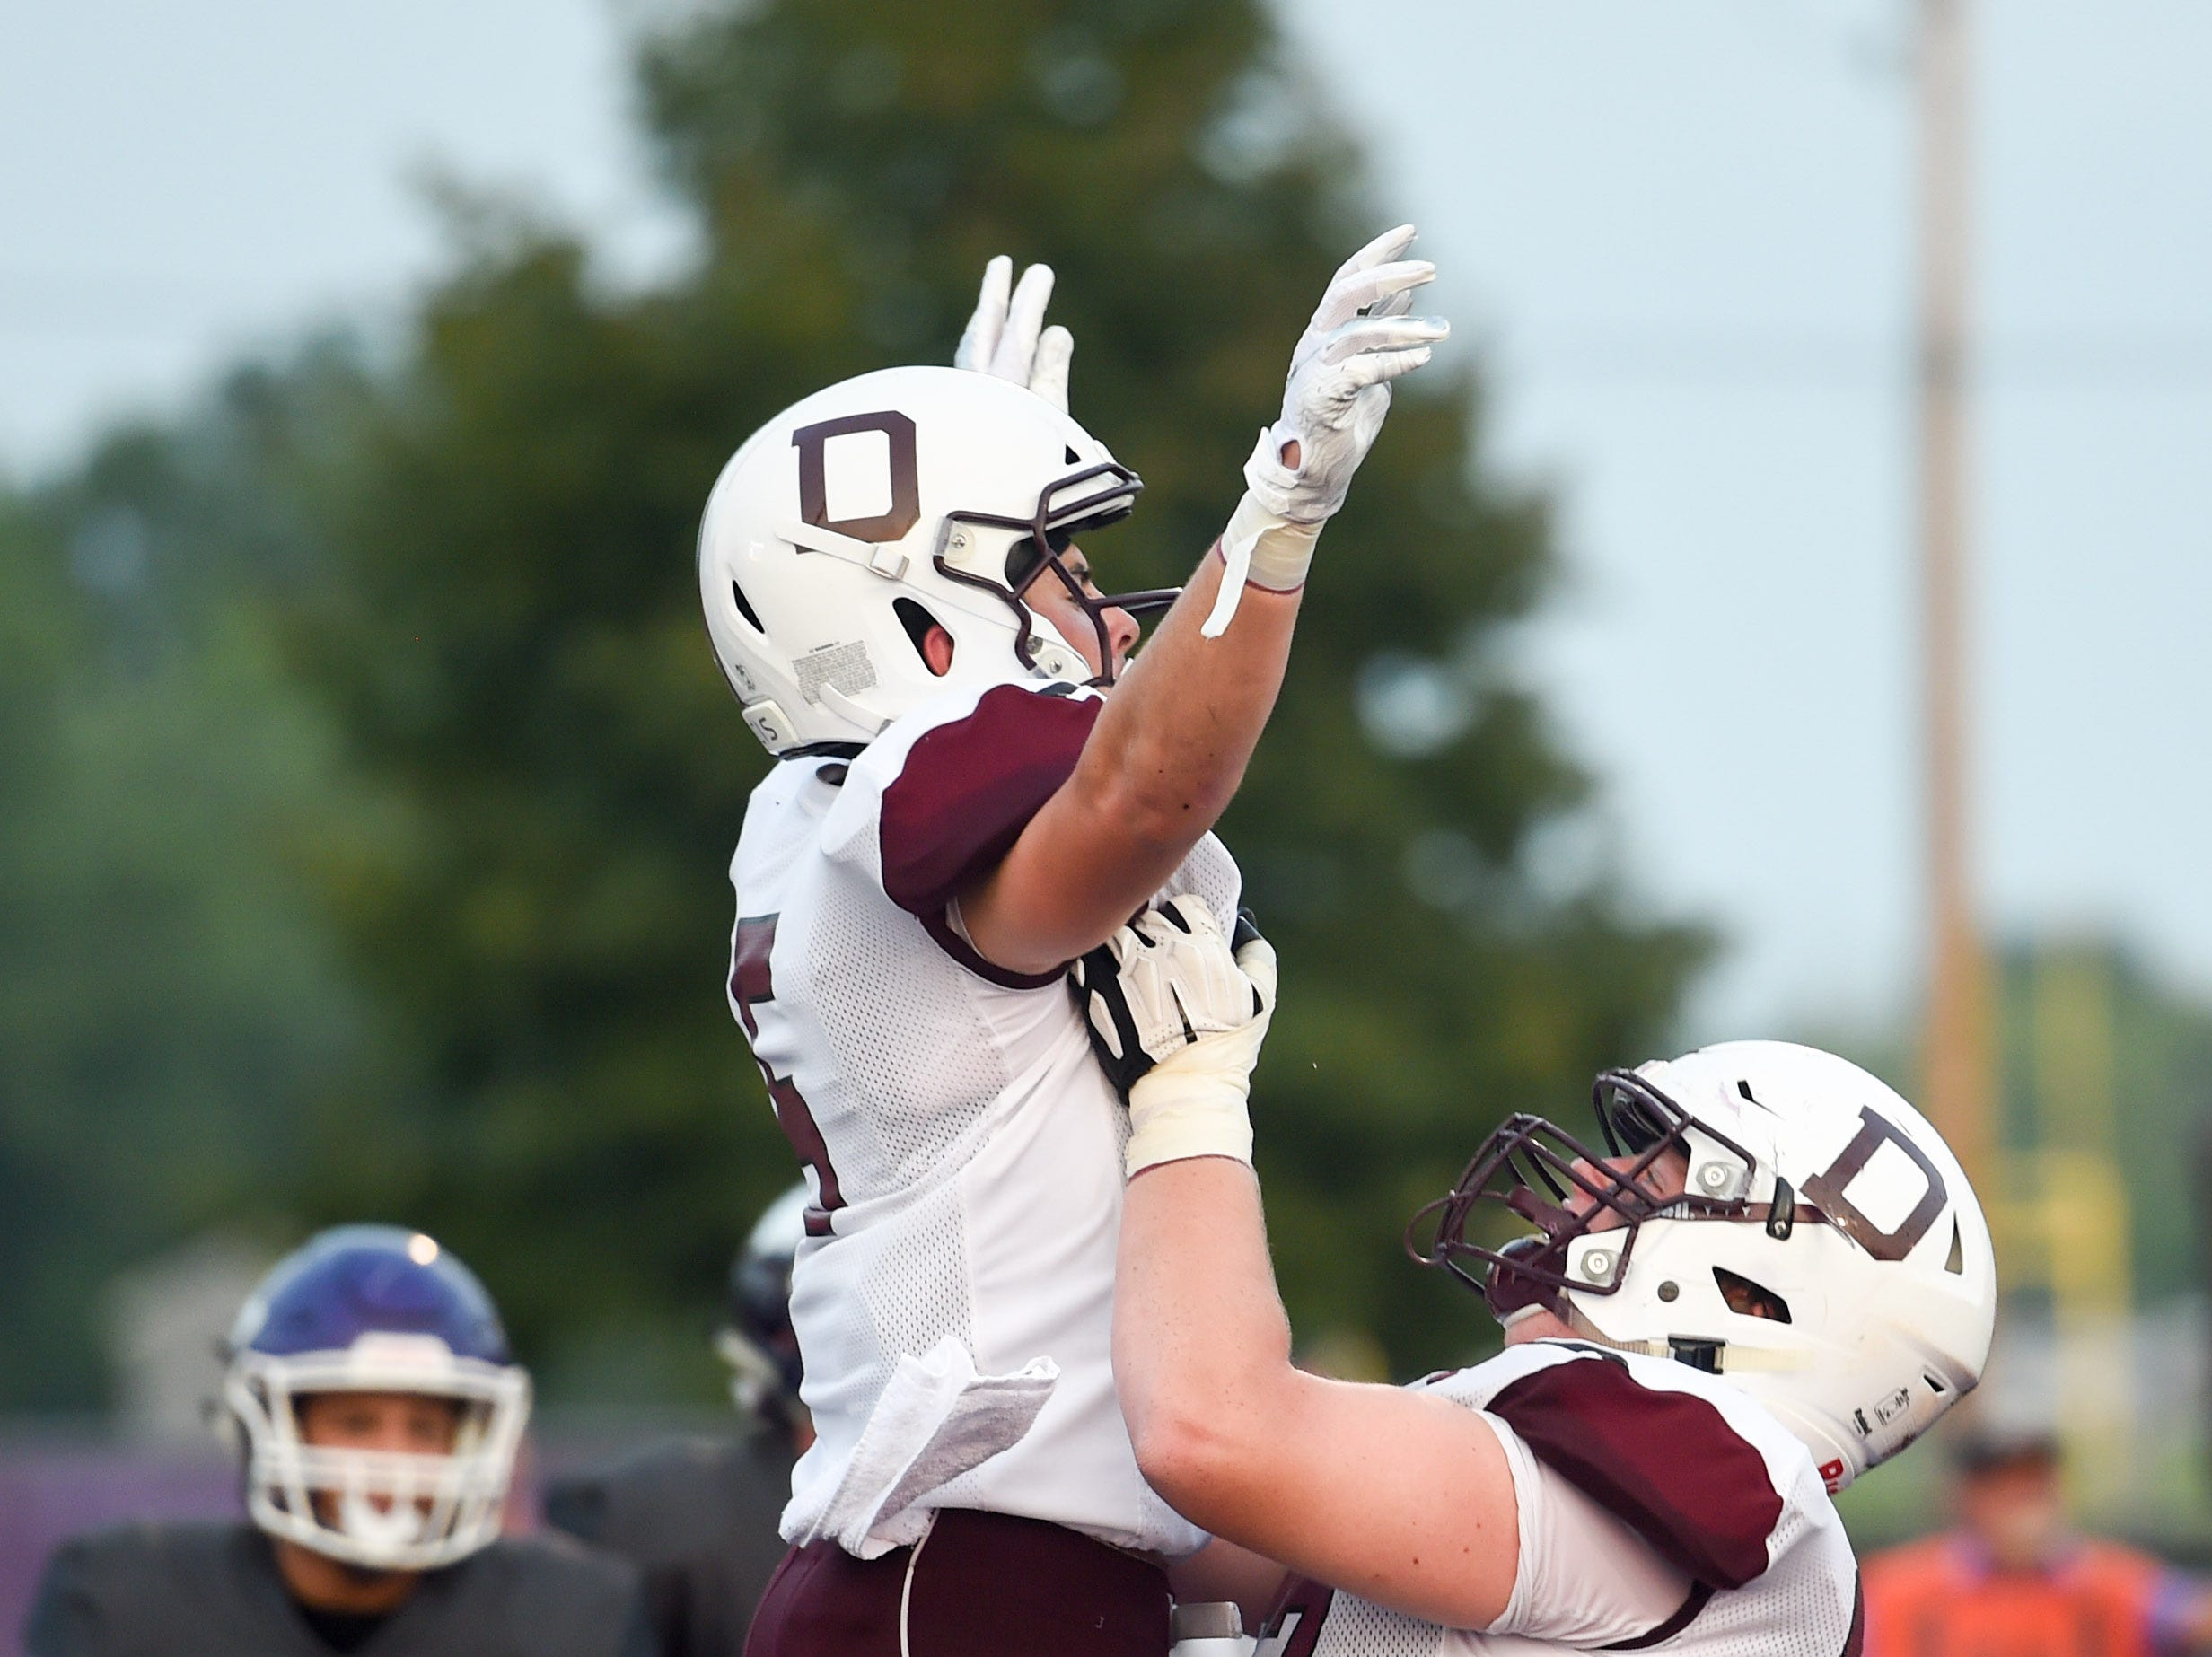 Dowling's Collin Cook (5) celebrates a touchdown with a teammate on Friday, August 24, 2018 during a football game between the Waukee Warriors and the Dowling Catholic Maroons at Waukee High School.